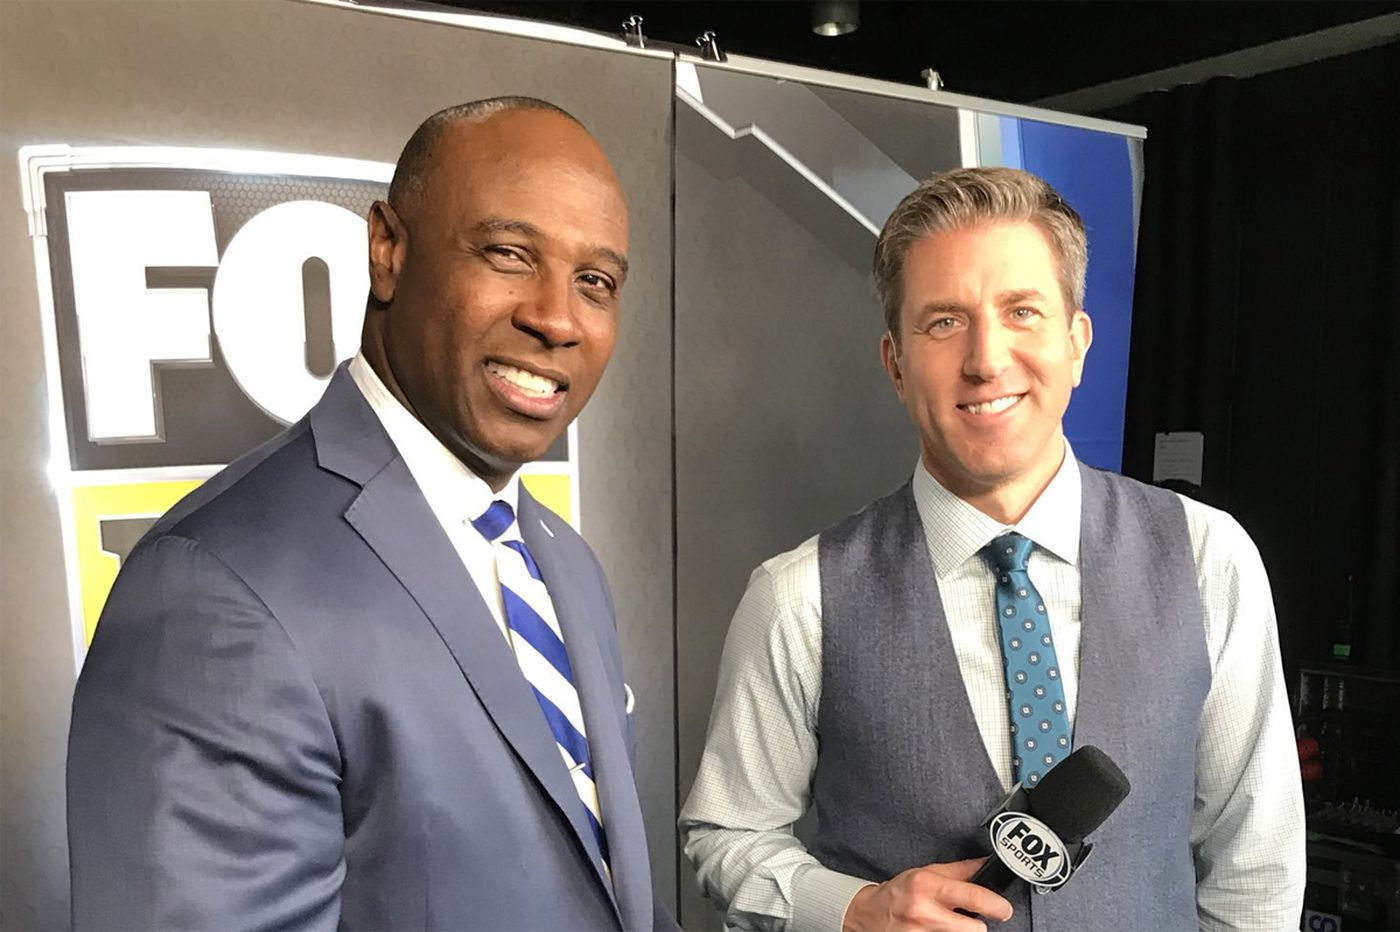 Eagles-Saints playoff game will be a first for FOX Sports announcer Charles Davis